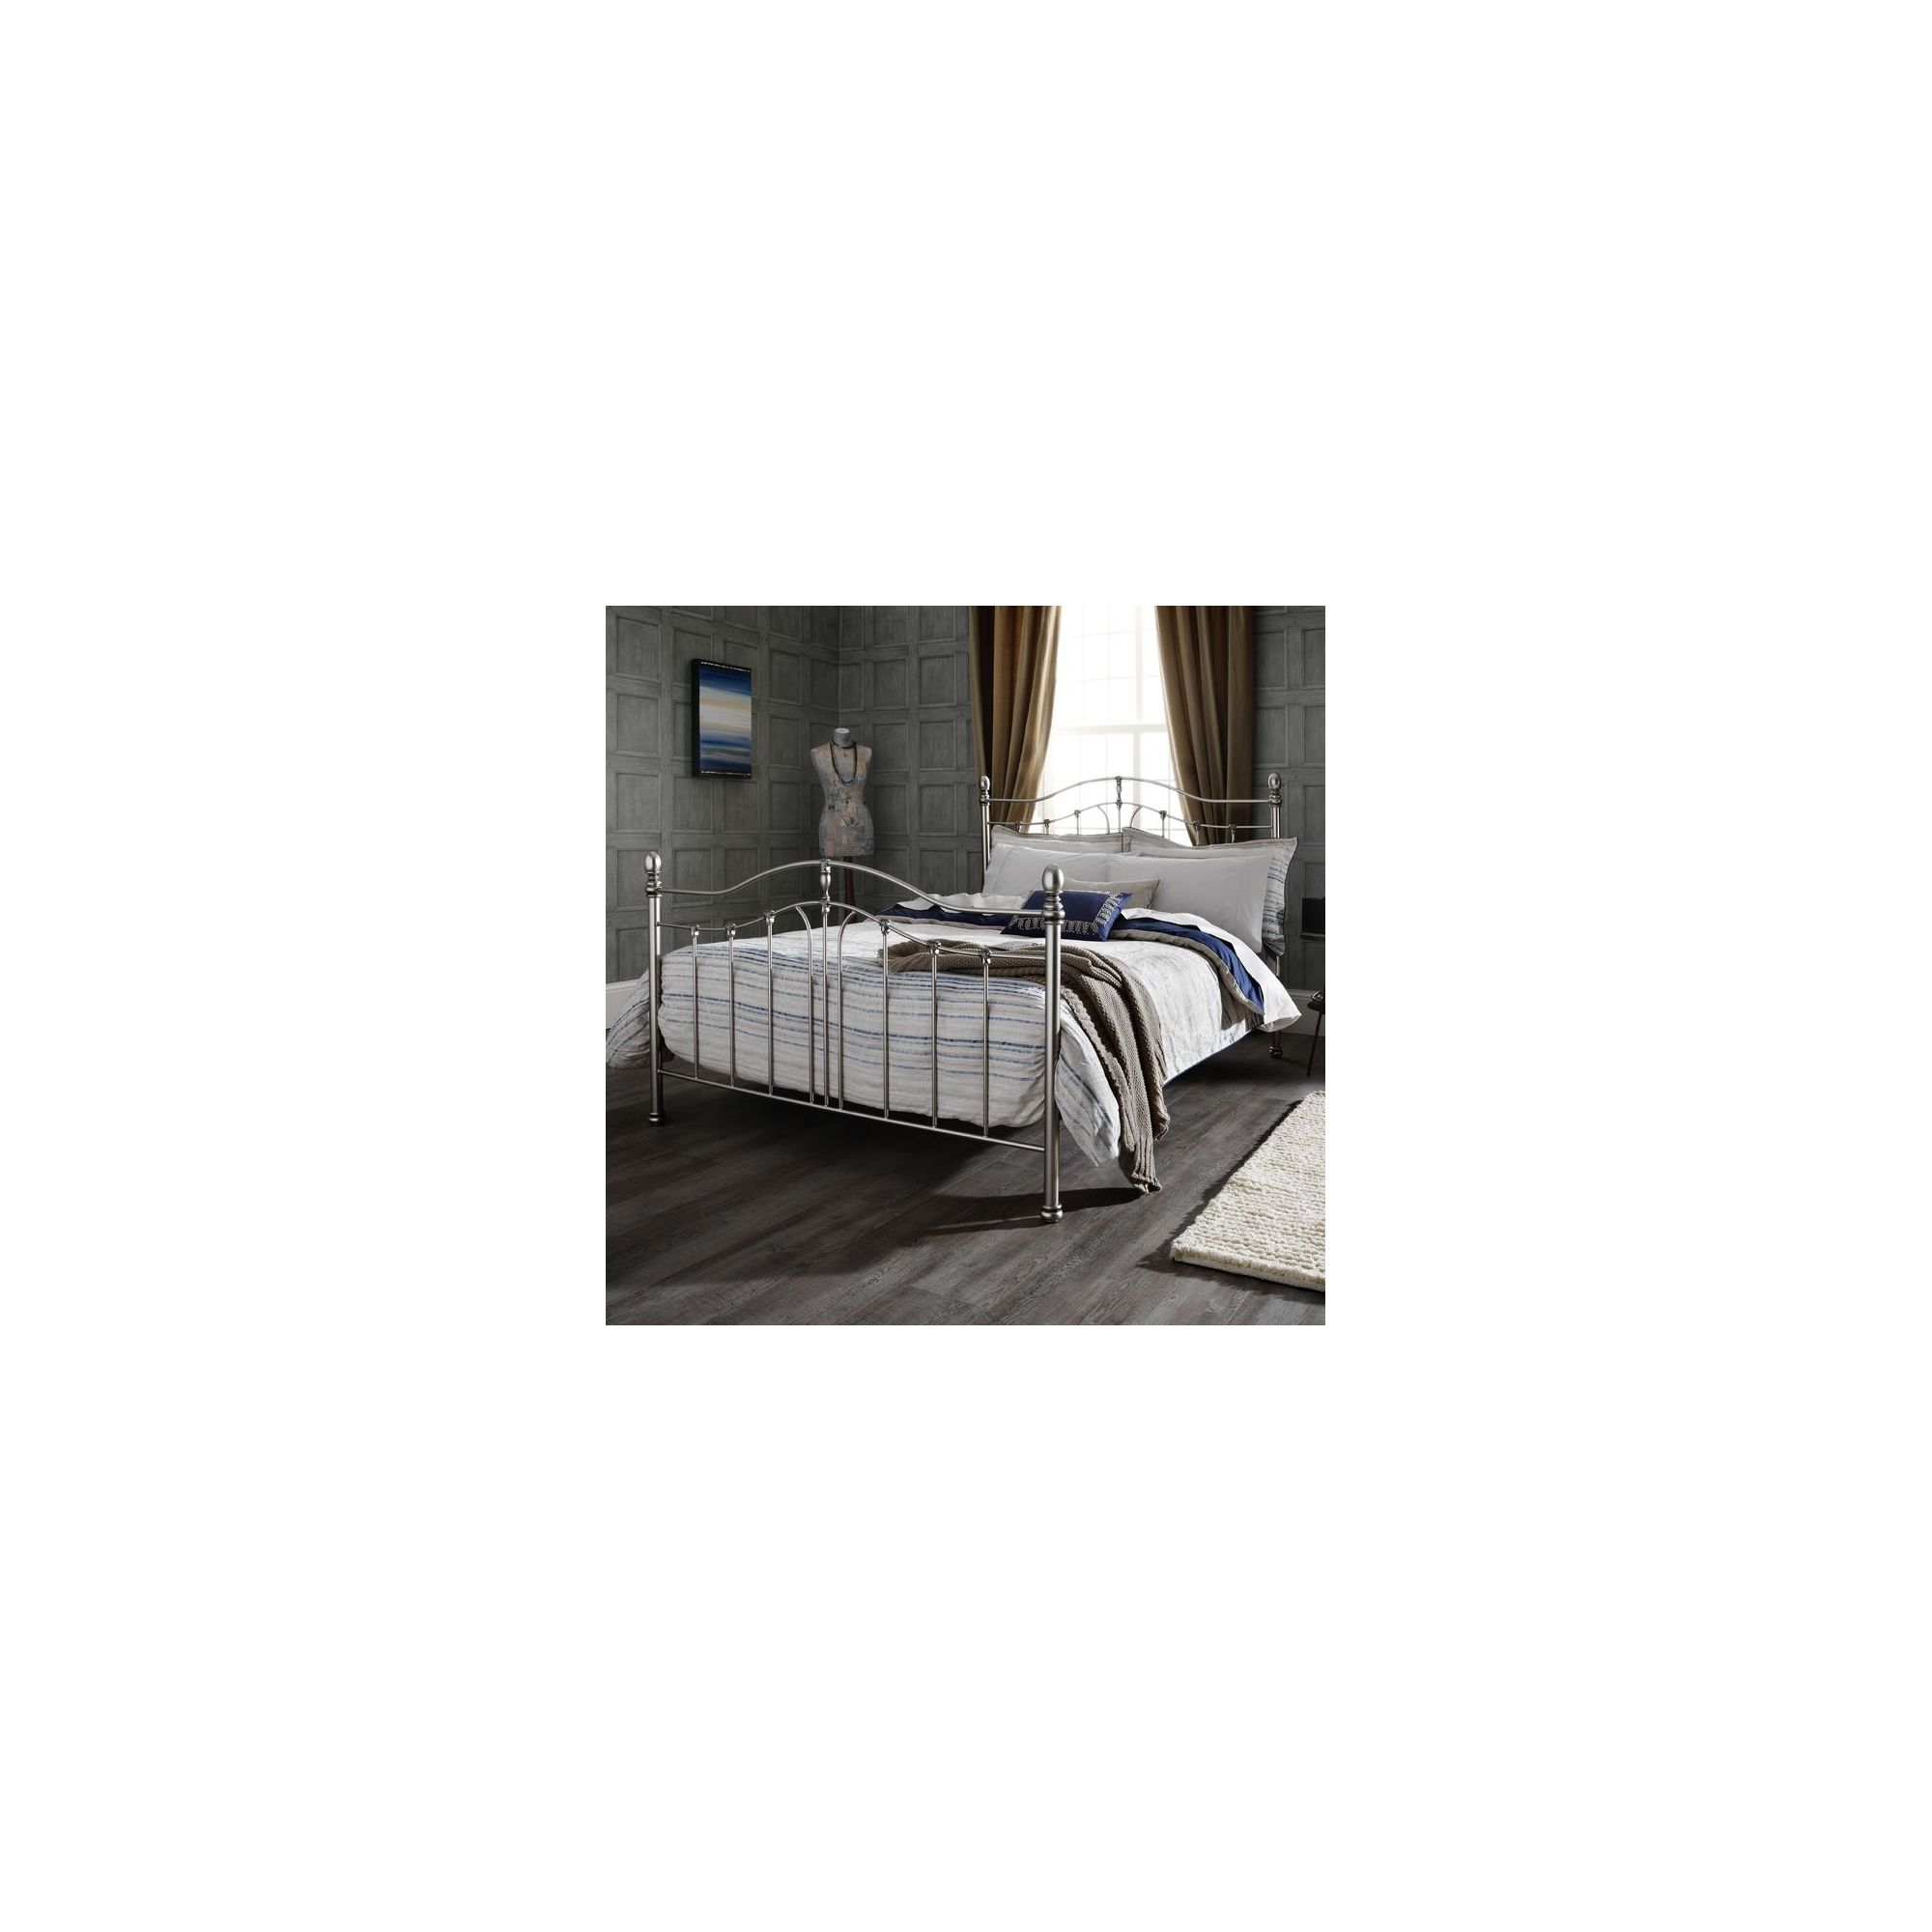 Serene Furnishings Camilla Bed Frame - Double - Satin Nickel / Antique Black at Tesco Direct